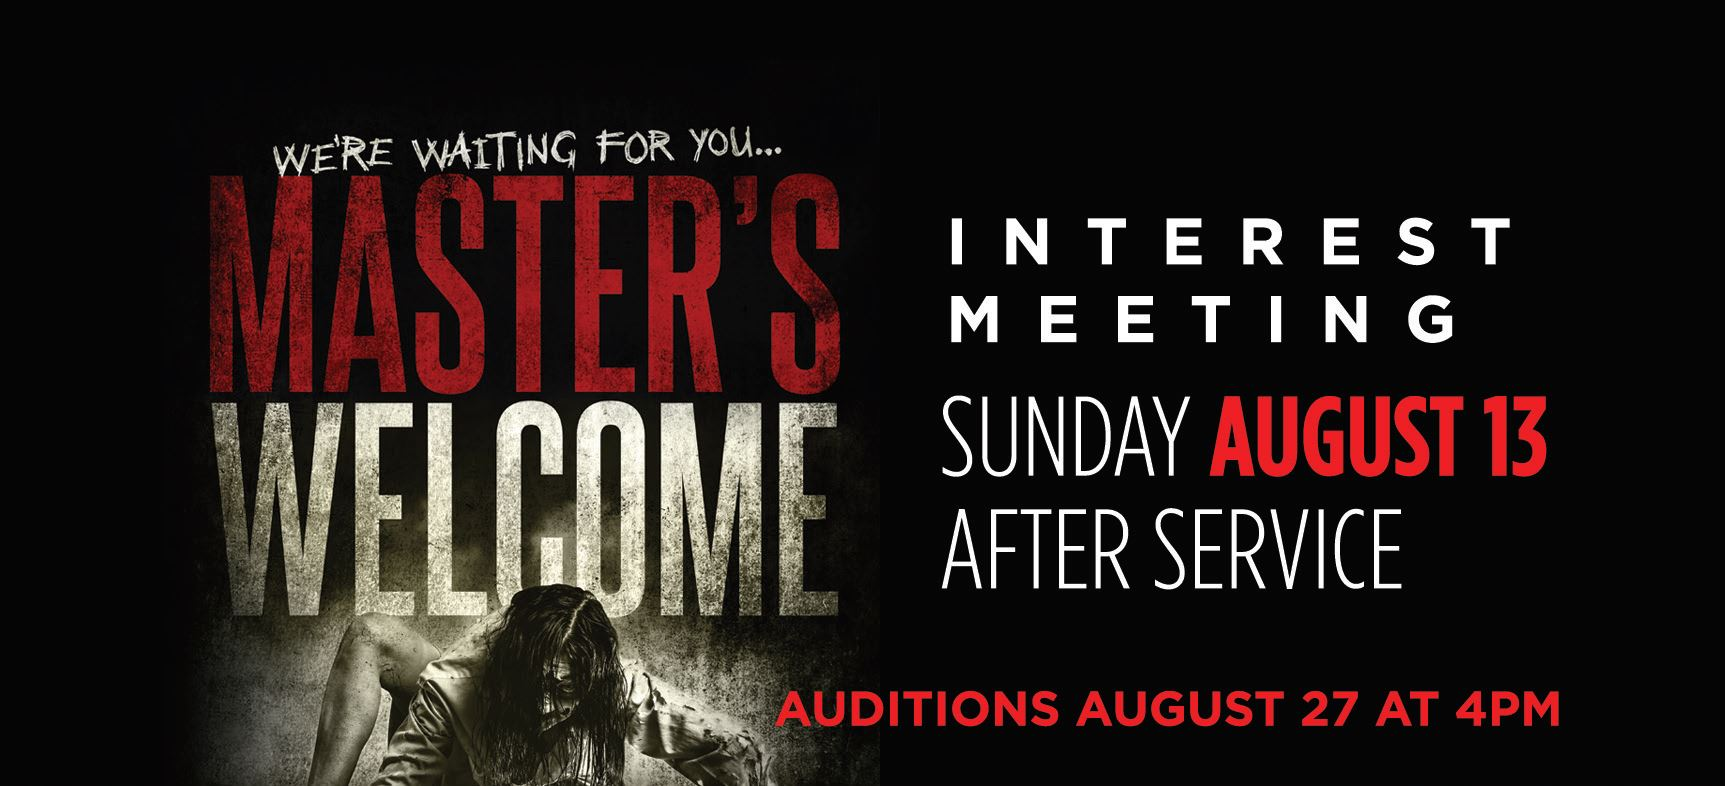 We're waiting for you... Master's Welcome | Interest Meeting Sunday, August 13, after service | Auditions August 27 at 4pm